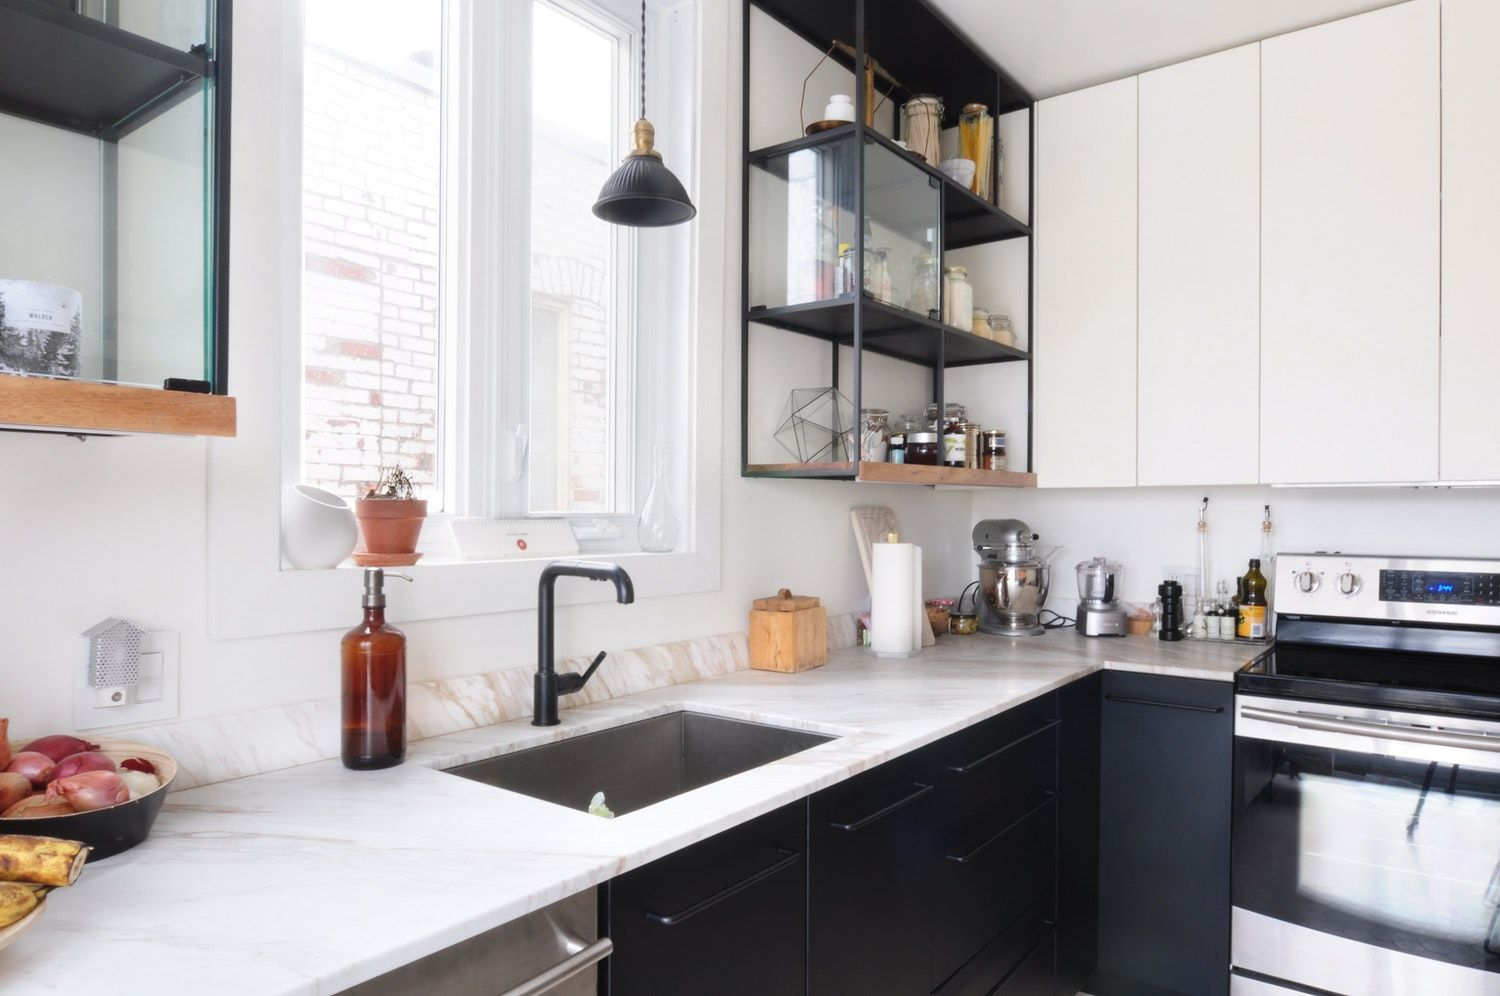 Is Your Kitchen Sink The Key To Happiness Yes According To This Fan Favorite Cleaning Plan Ikea Kitchen Design Kitchen Design New Kitchen